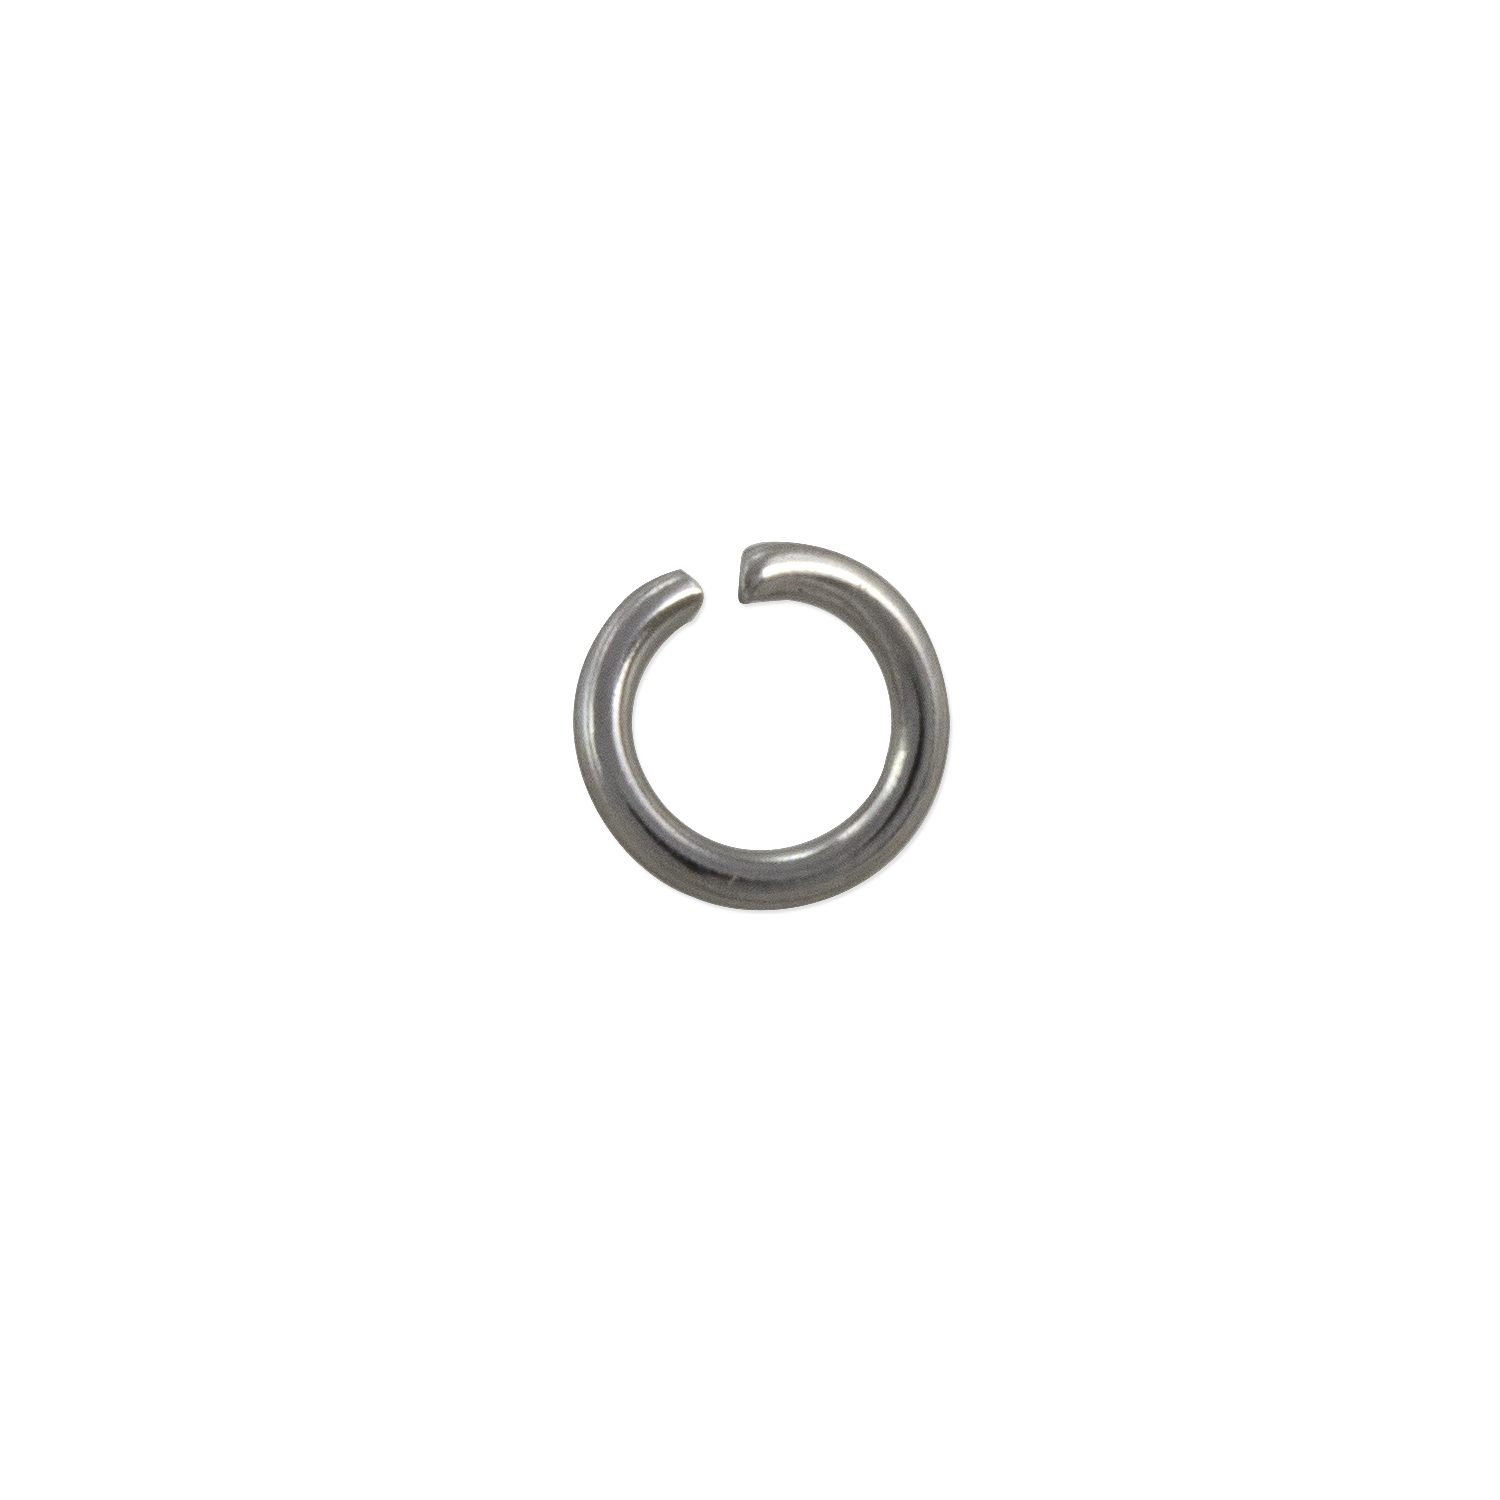 4mm 20pcs 22 Gauge Gold Plated Stainless Steel Jump Rings Jewelry Findings Open